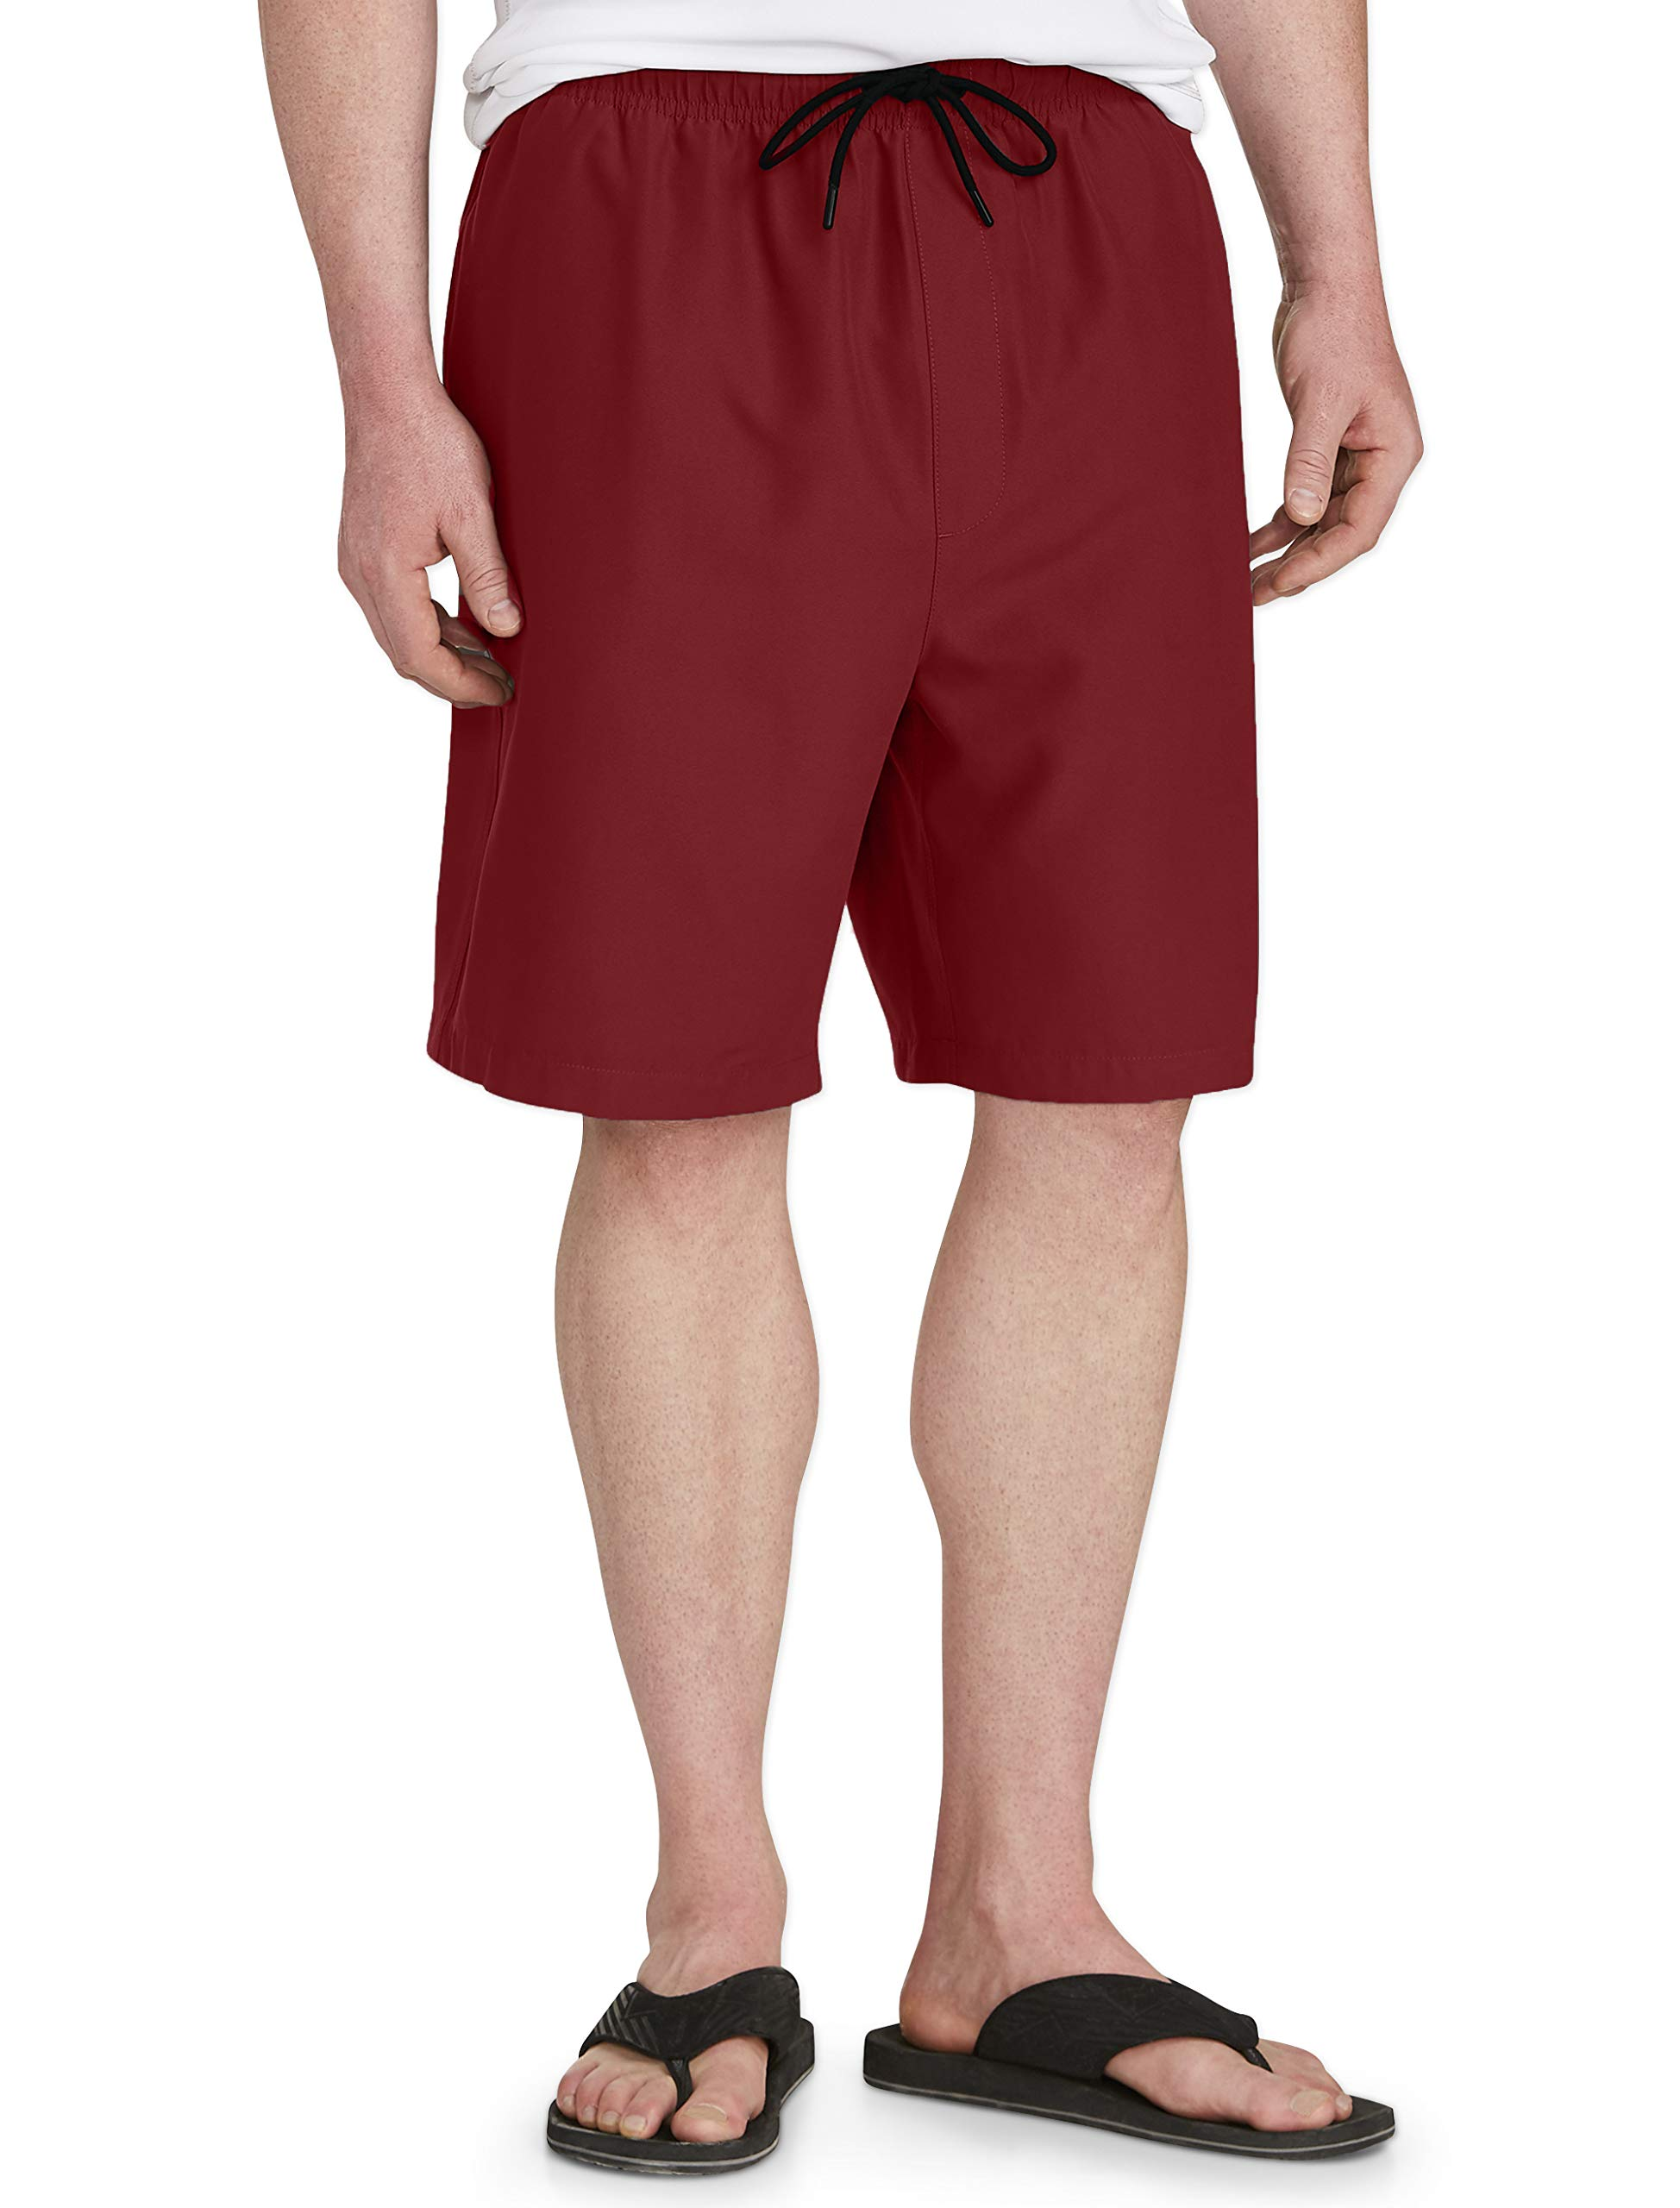 Amazon Essentials Men's Big & Tall Quick-Dry Swim Trunk fit by DXL, Red, 3XLT by Amazon Essentials